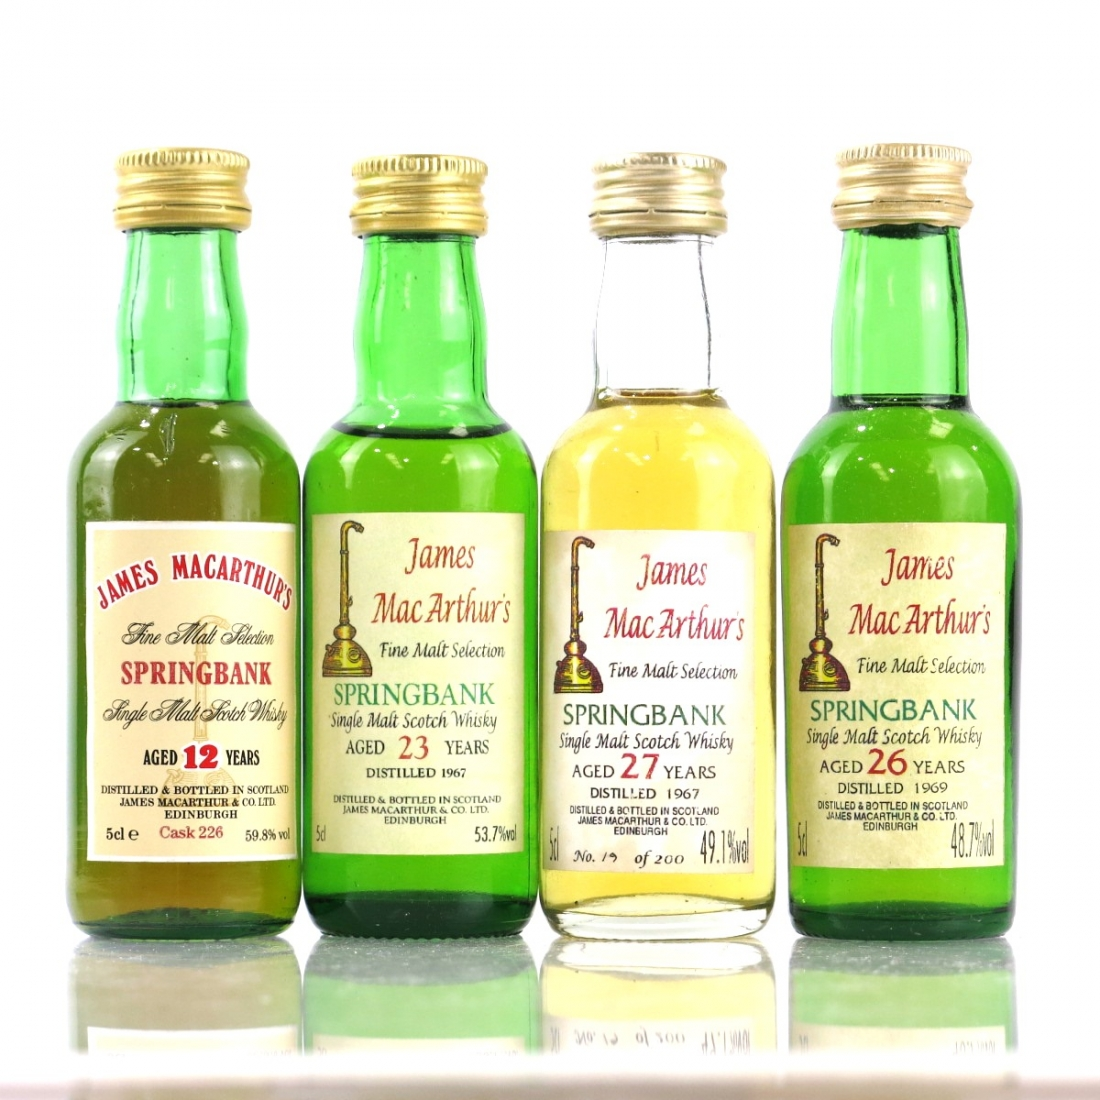 Springbank James MAcArthur's Miniatures 4 x 5cl | Whisky